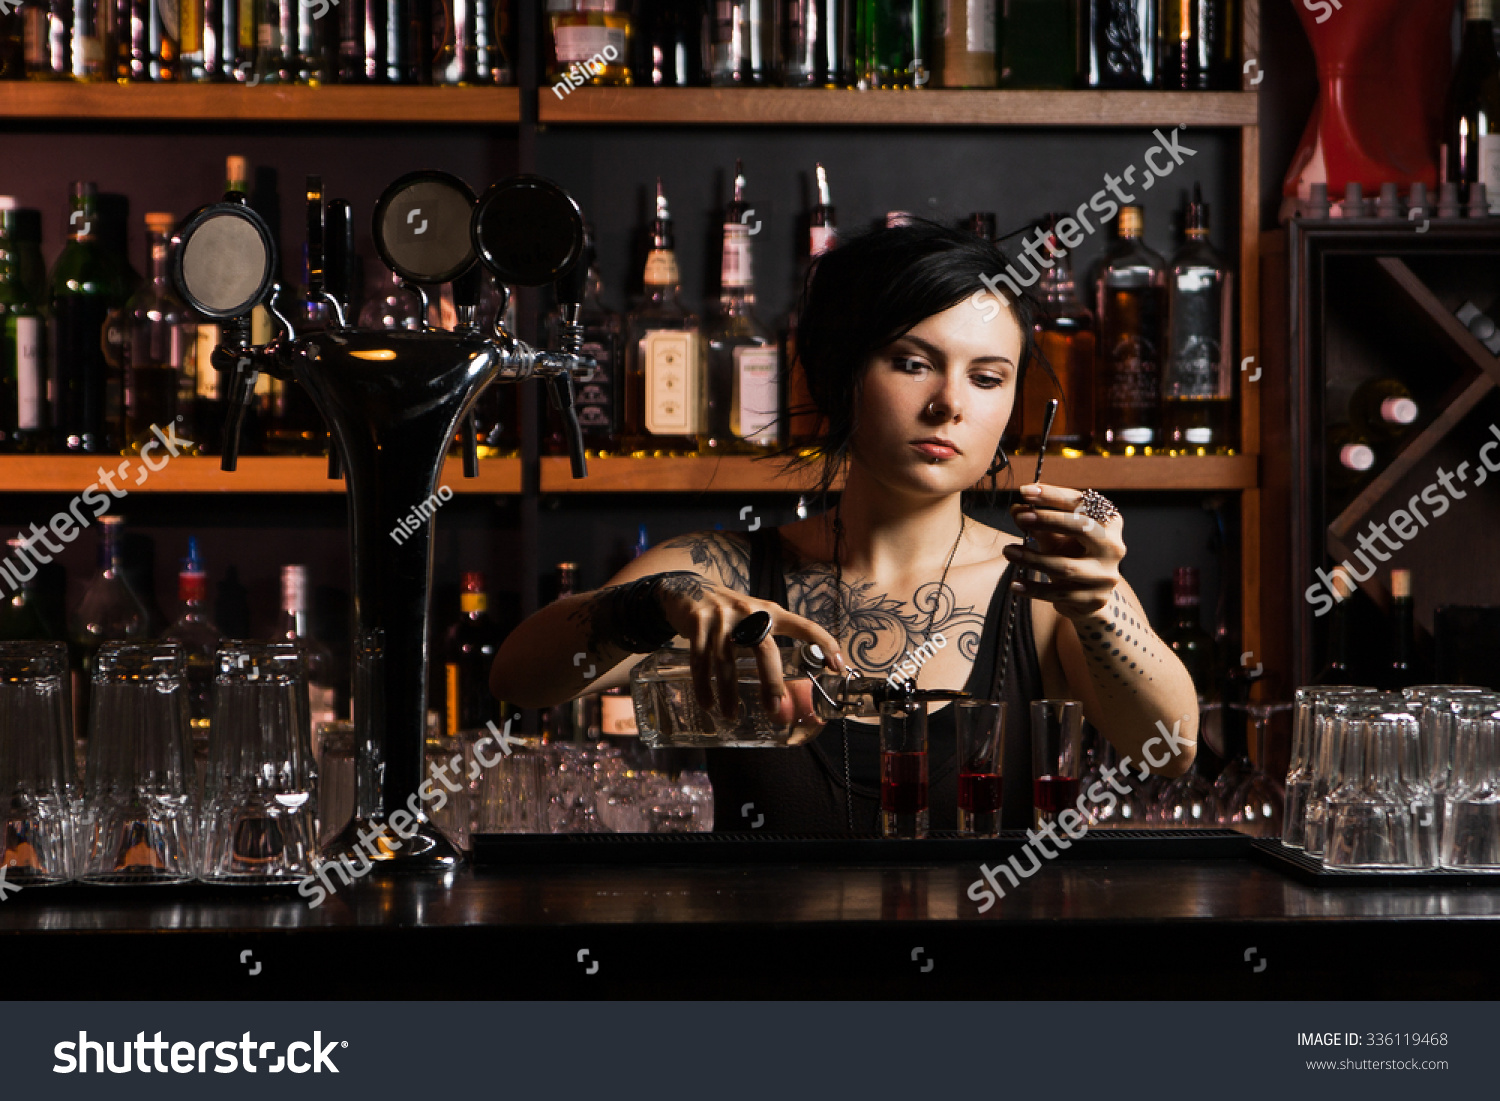 Attractive bartender cocktail stock photo 336119468 for Cocktail bartender